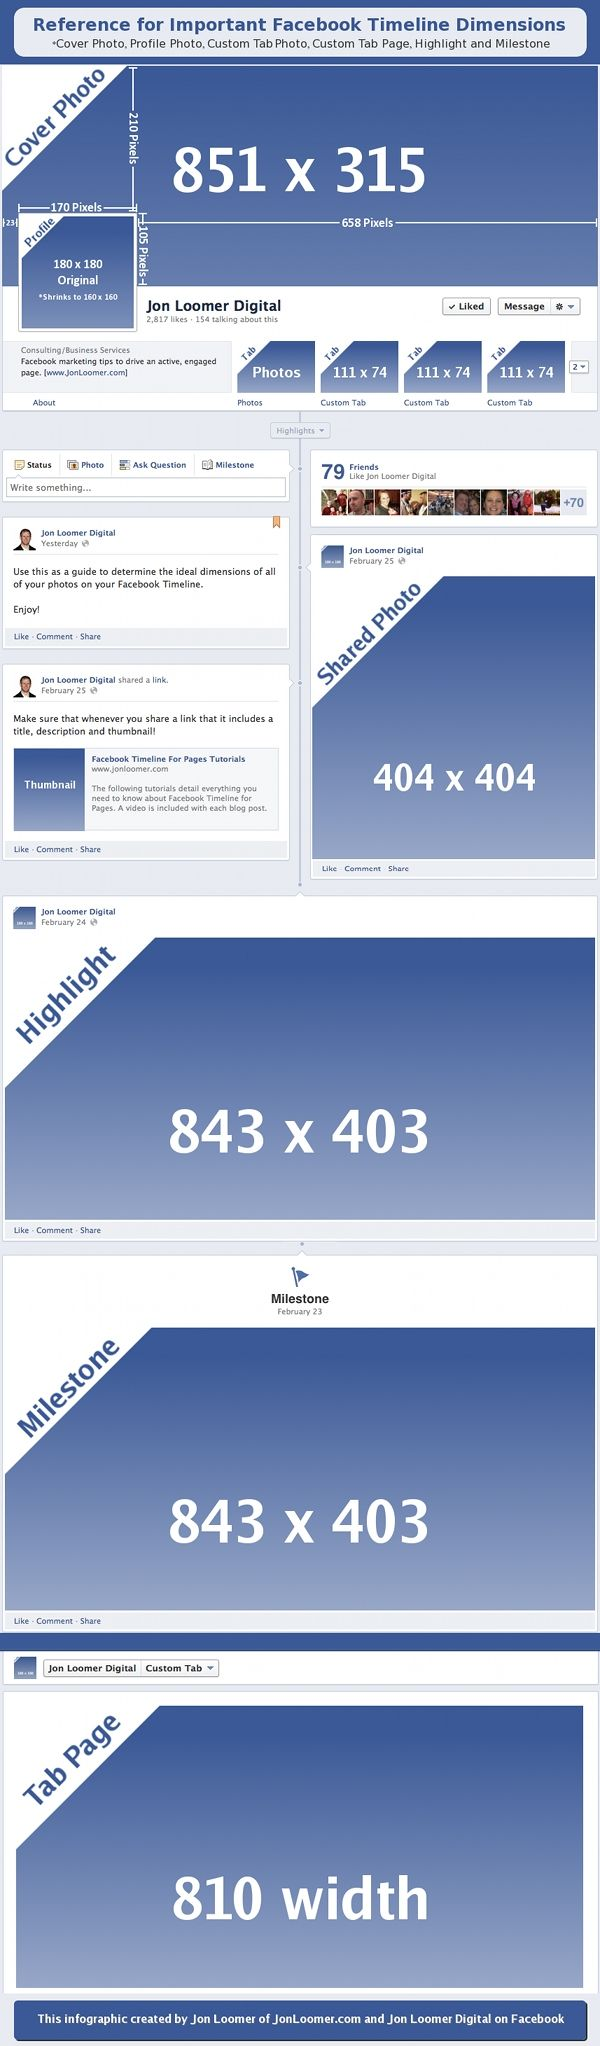 Great updated infographic re: Facebook page layout - photo dimensions etc.